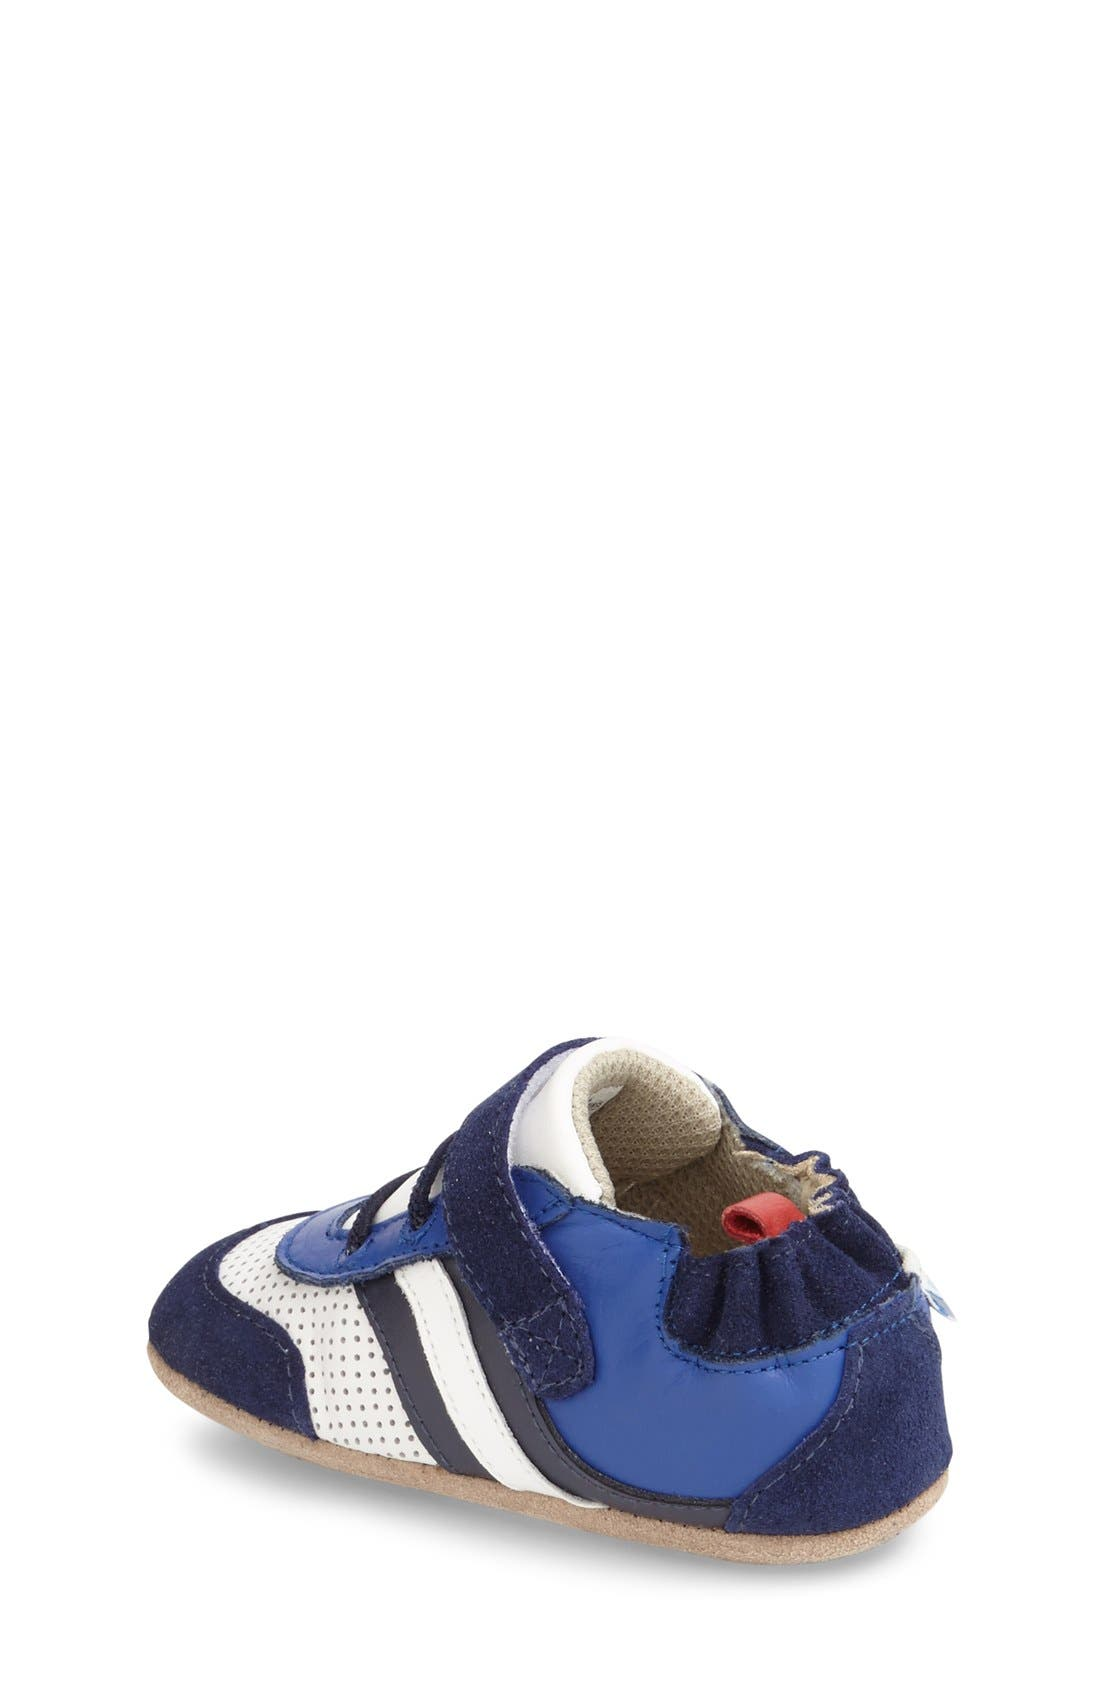 'Everyday Ethan' Crib Shoe,                             Alternate thumbnail 2, color,                             Blue